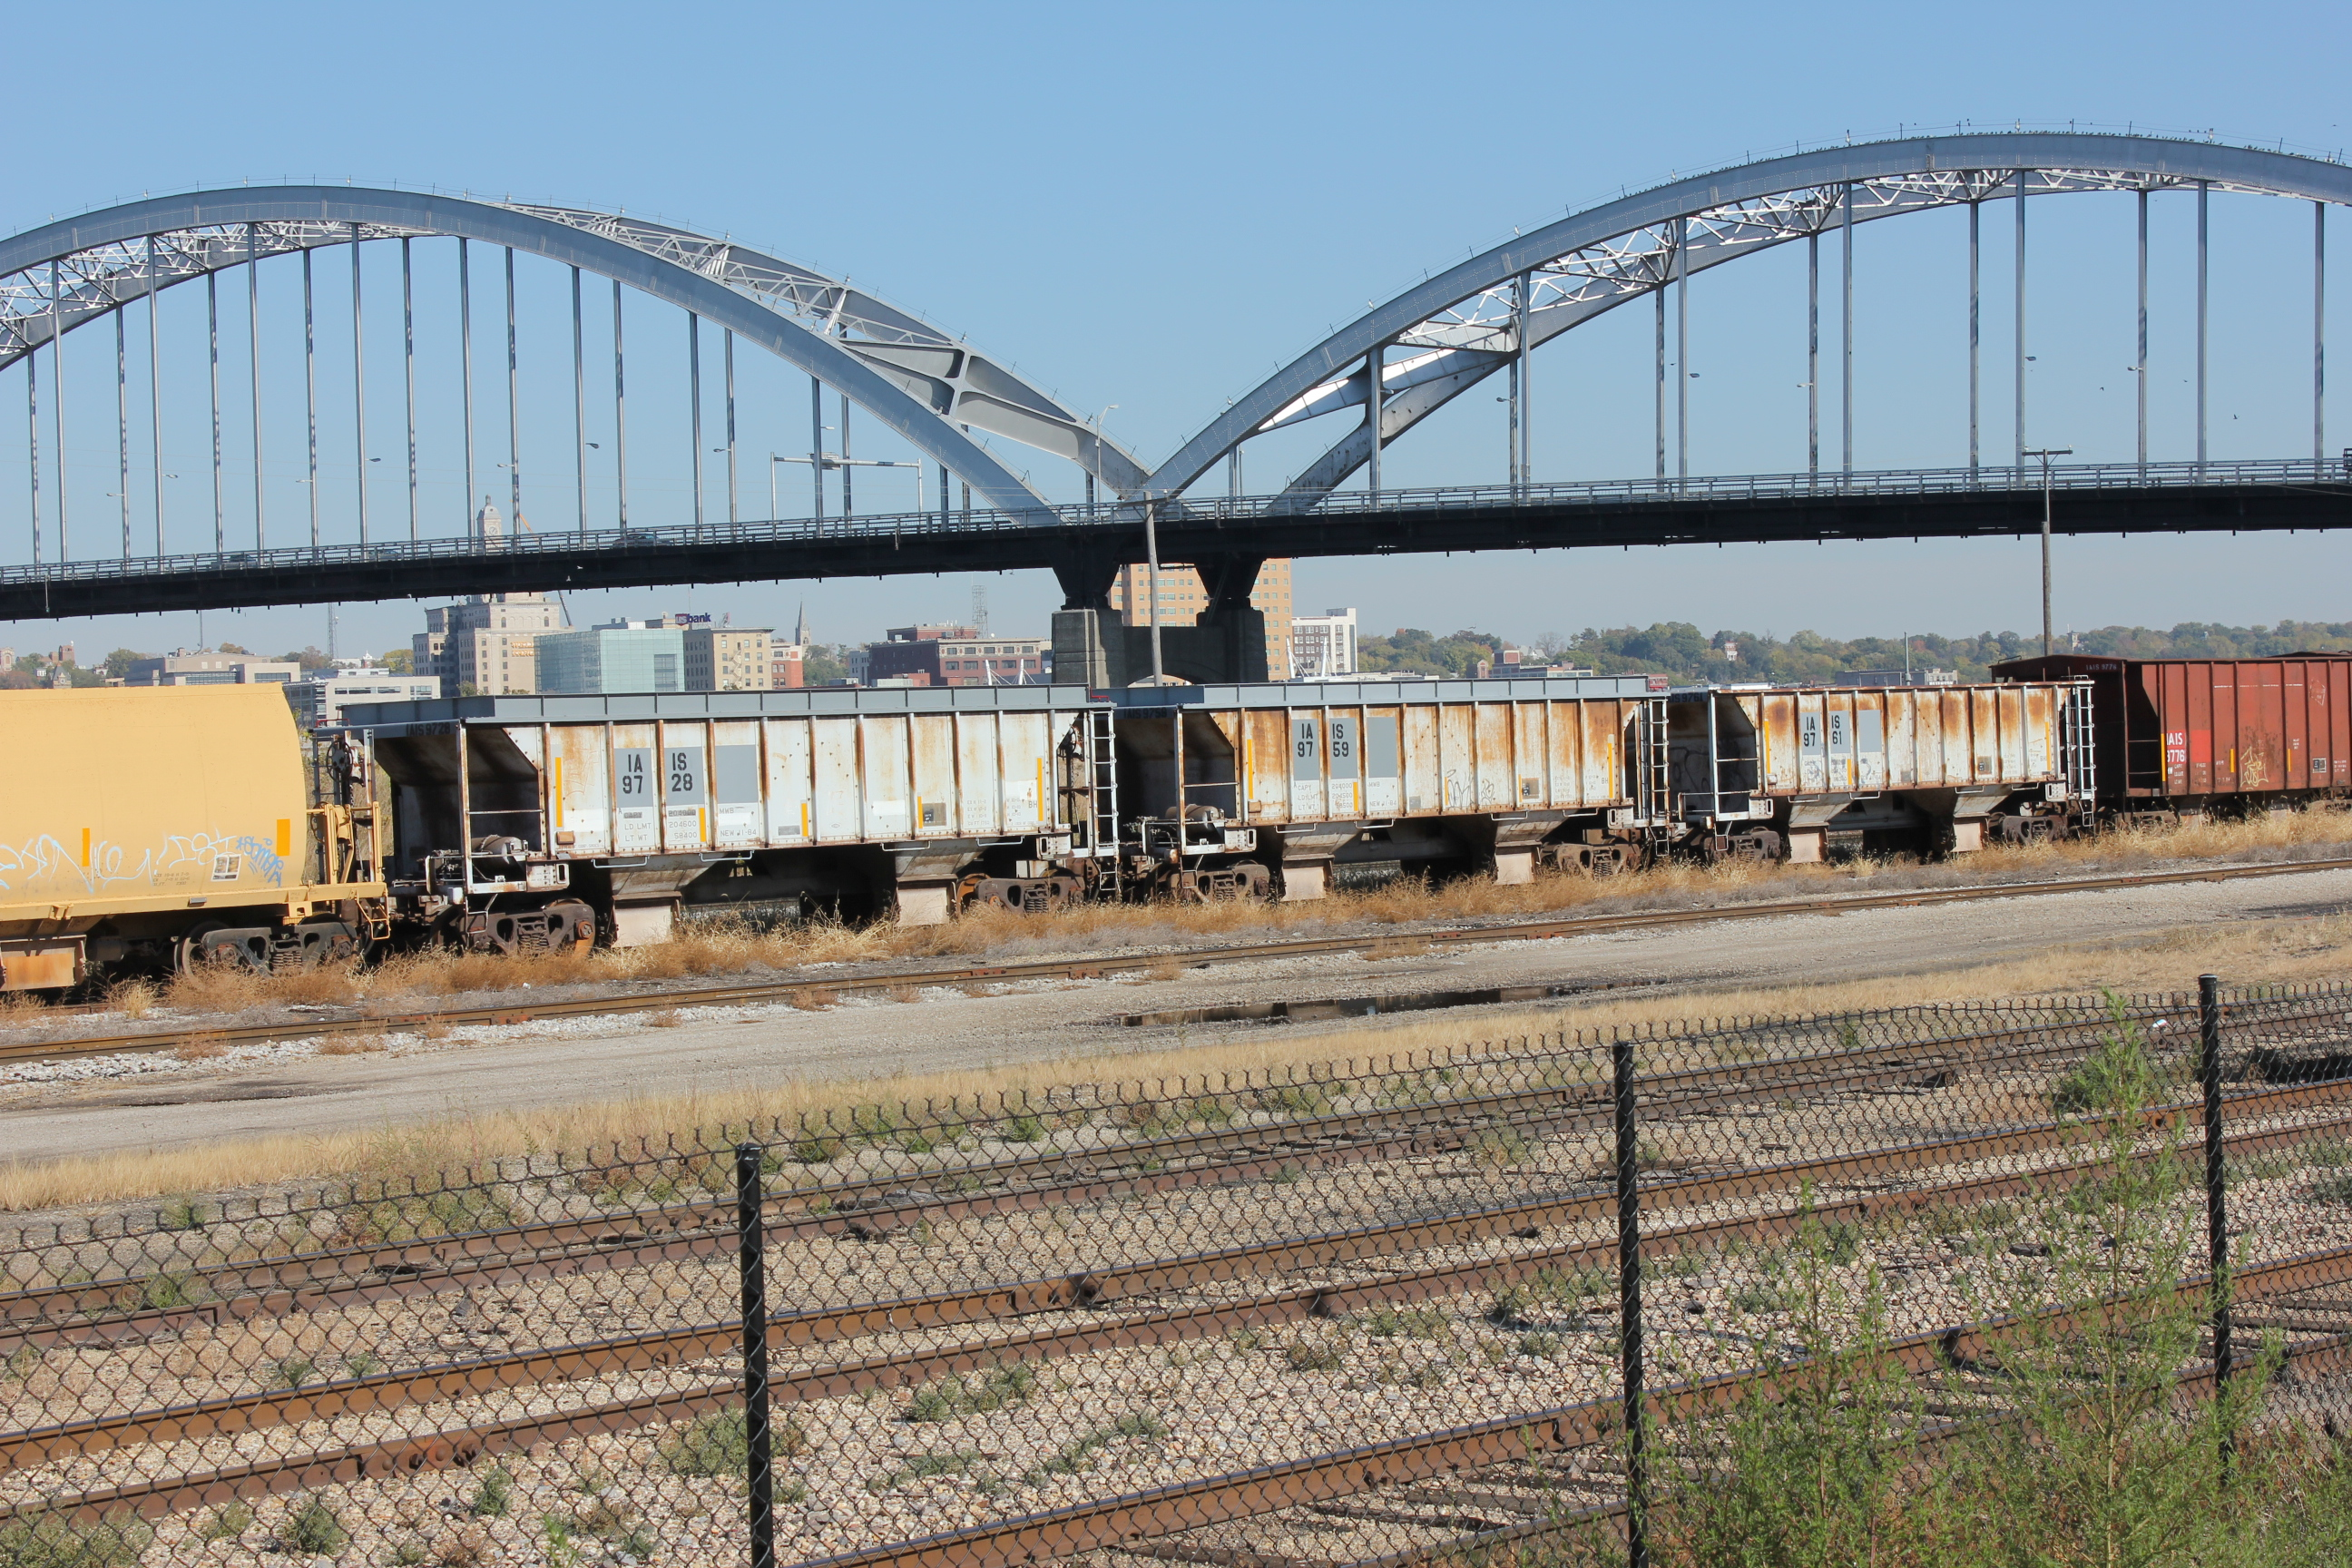 Some of the new and some old ballast cars at 17th St. yard in RI, Oct. 25, 2013.